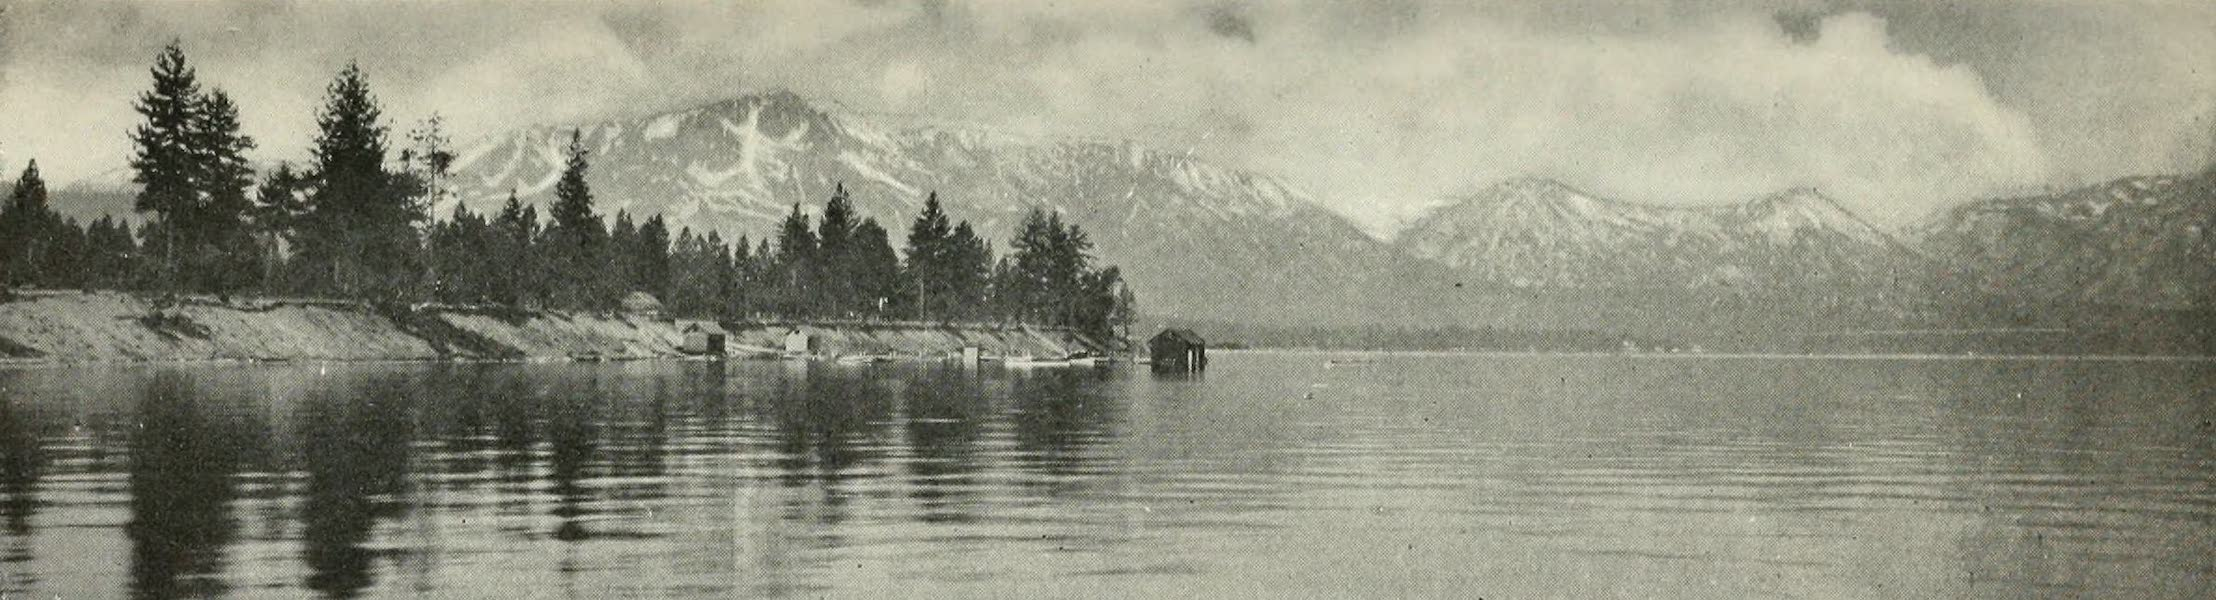 The Lake of the Sky, Lake Tahoe - Mount Tallac, Rubicon Peaks, etc., from Long Wharf at Al Tahoe, Lake Tahoe (1915)